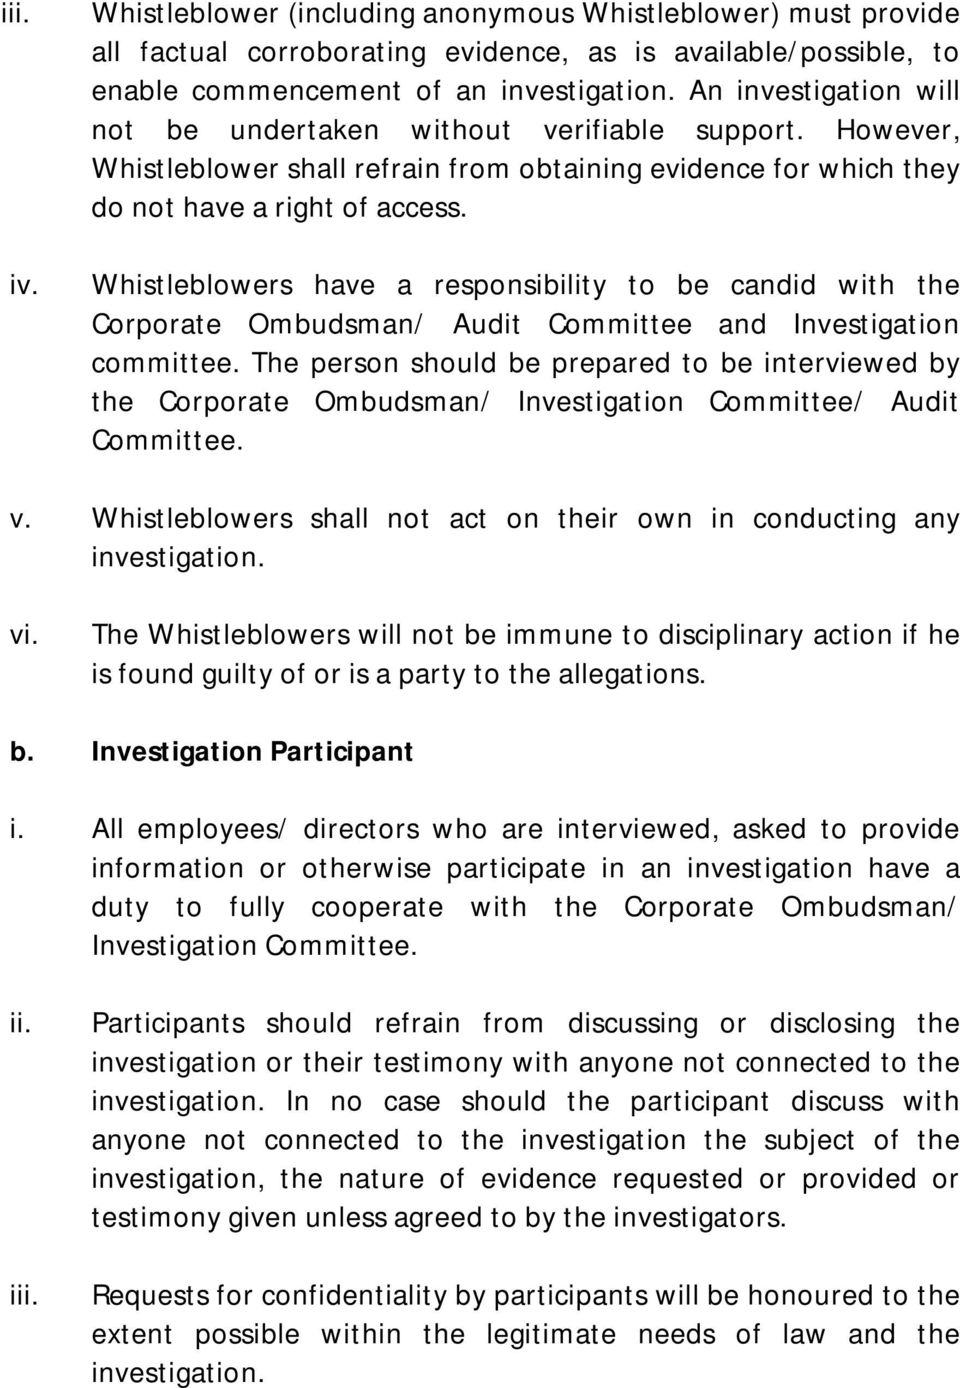 Whistleblowers have a responsibility to be candid with the Corporate Ombudsman/ Audit Committee and Investigation committee.